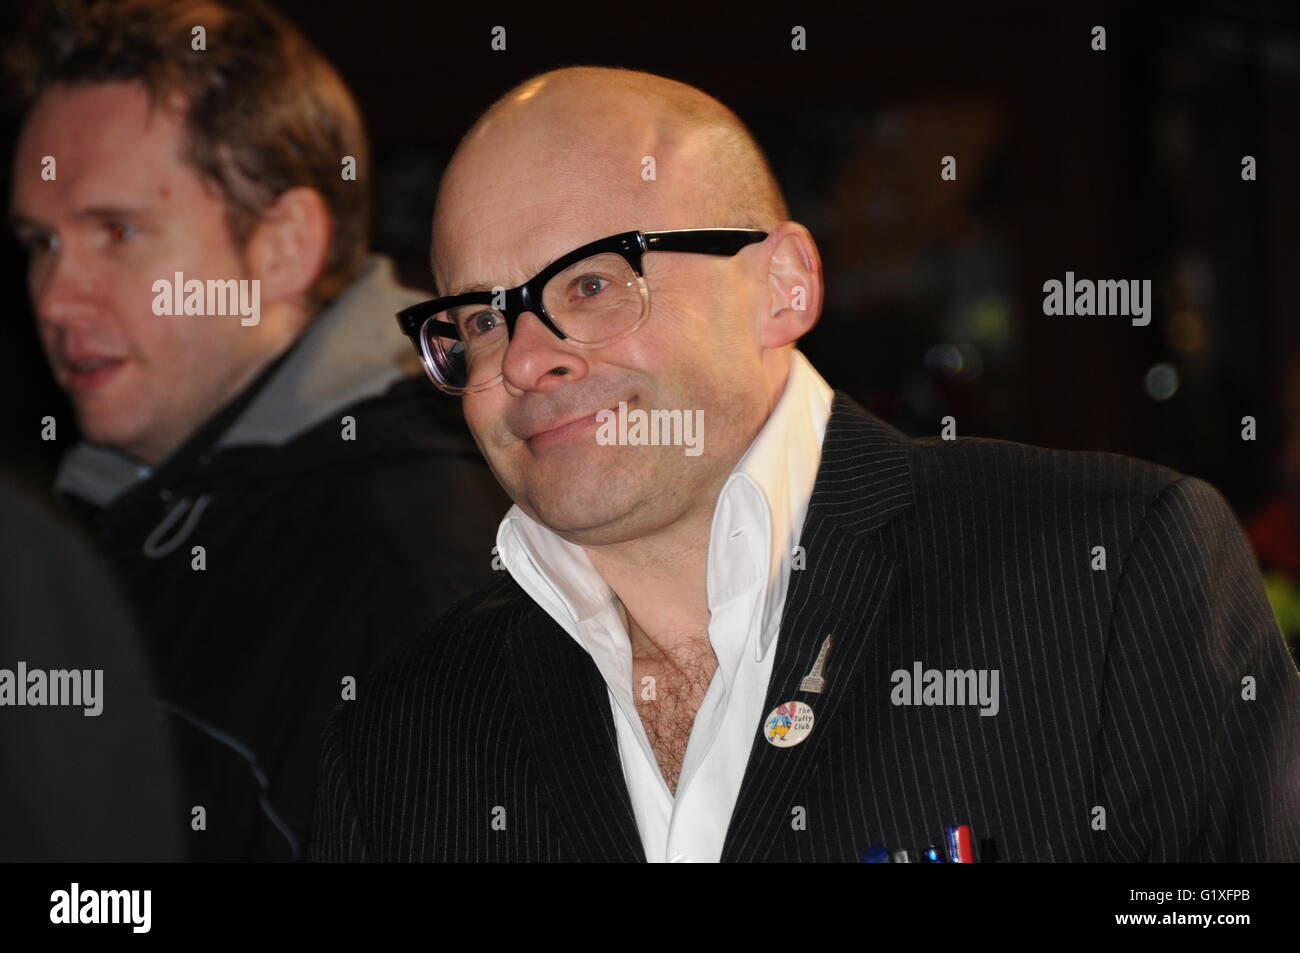 Comedian Harry Hill, at the premiere of his film: Harry Hill the Movie. - Stock Image